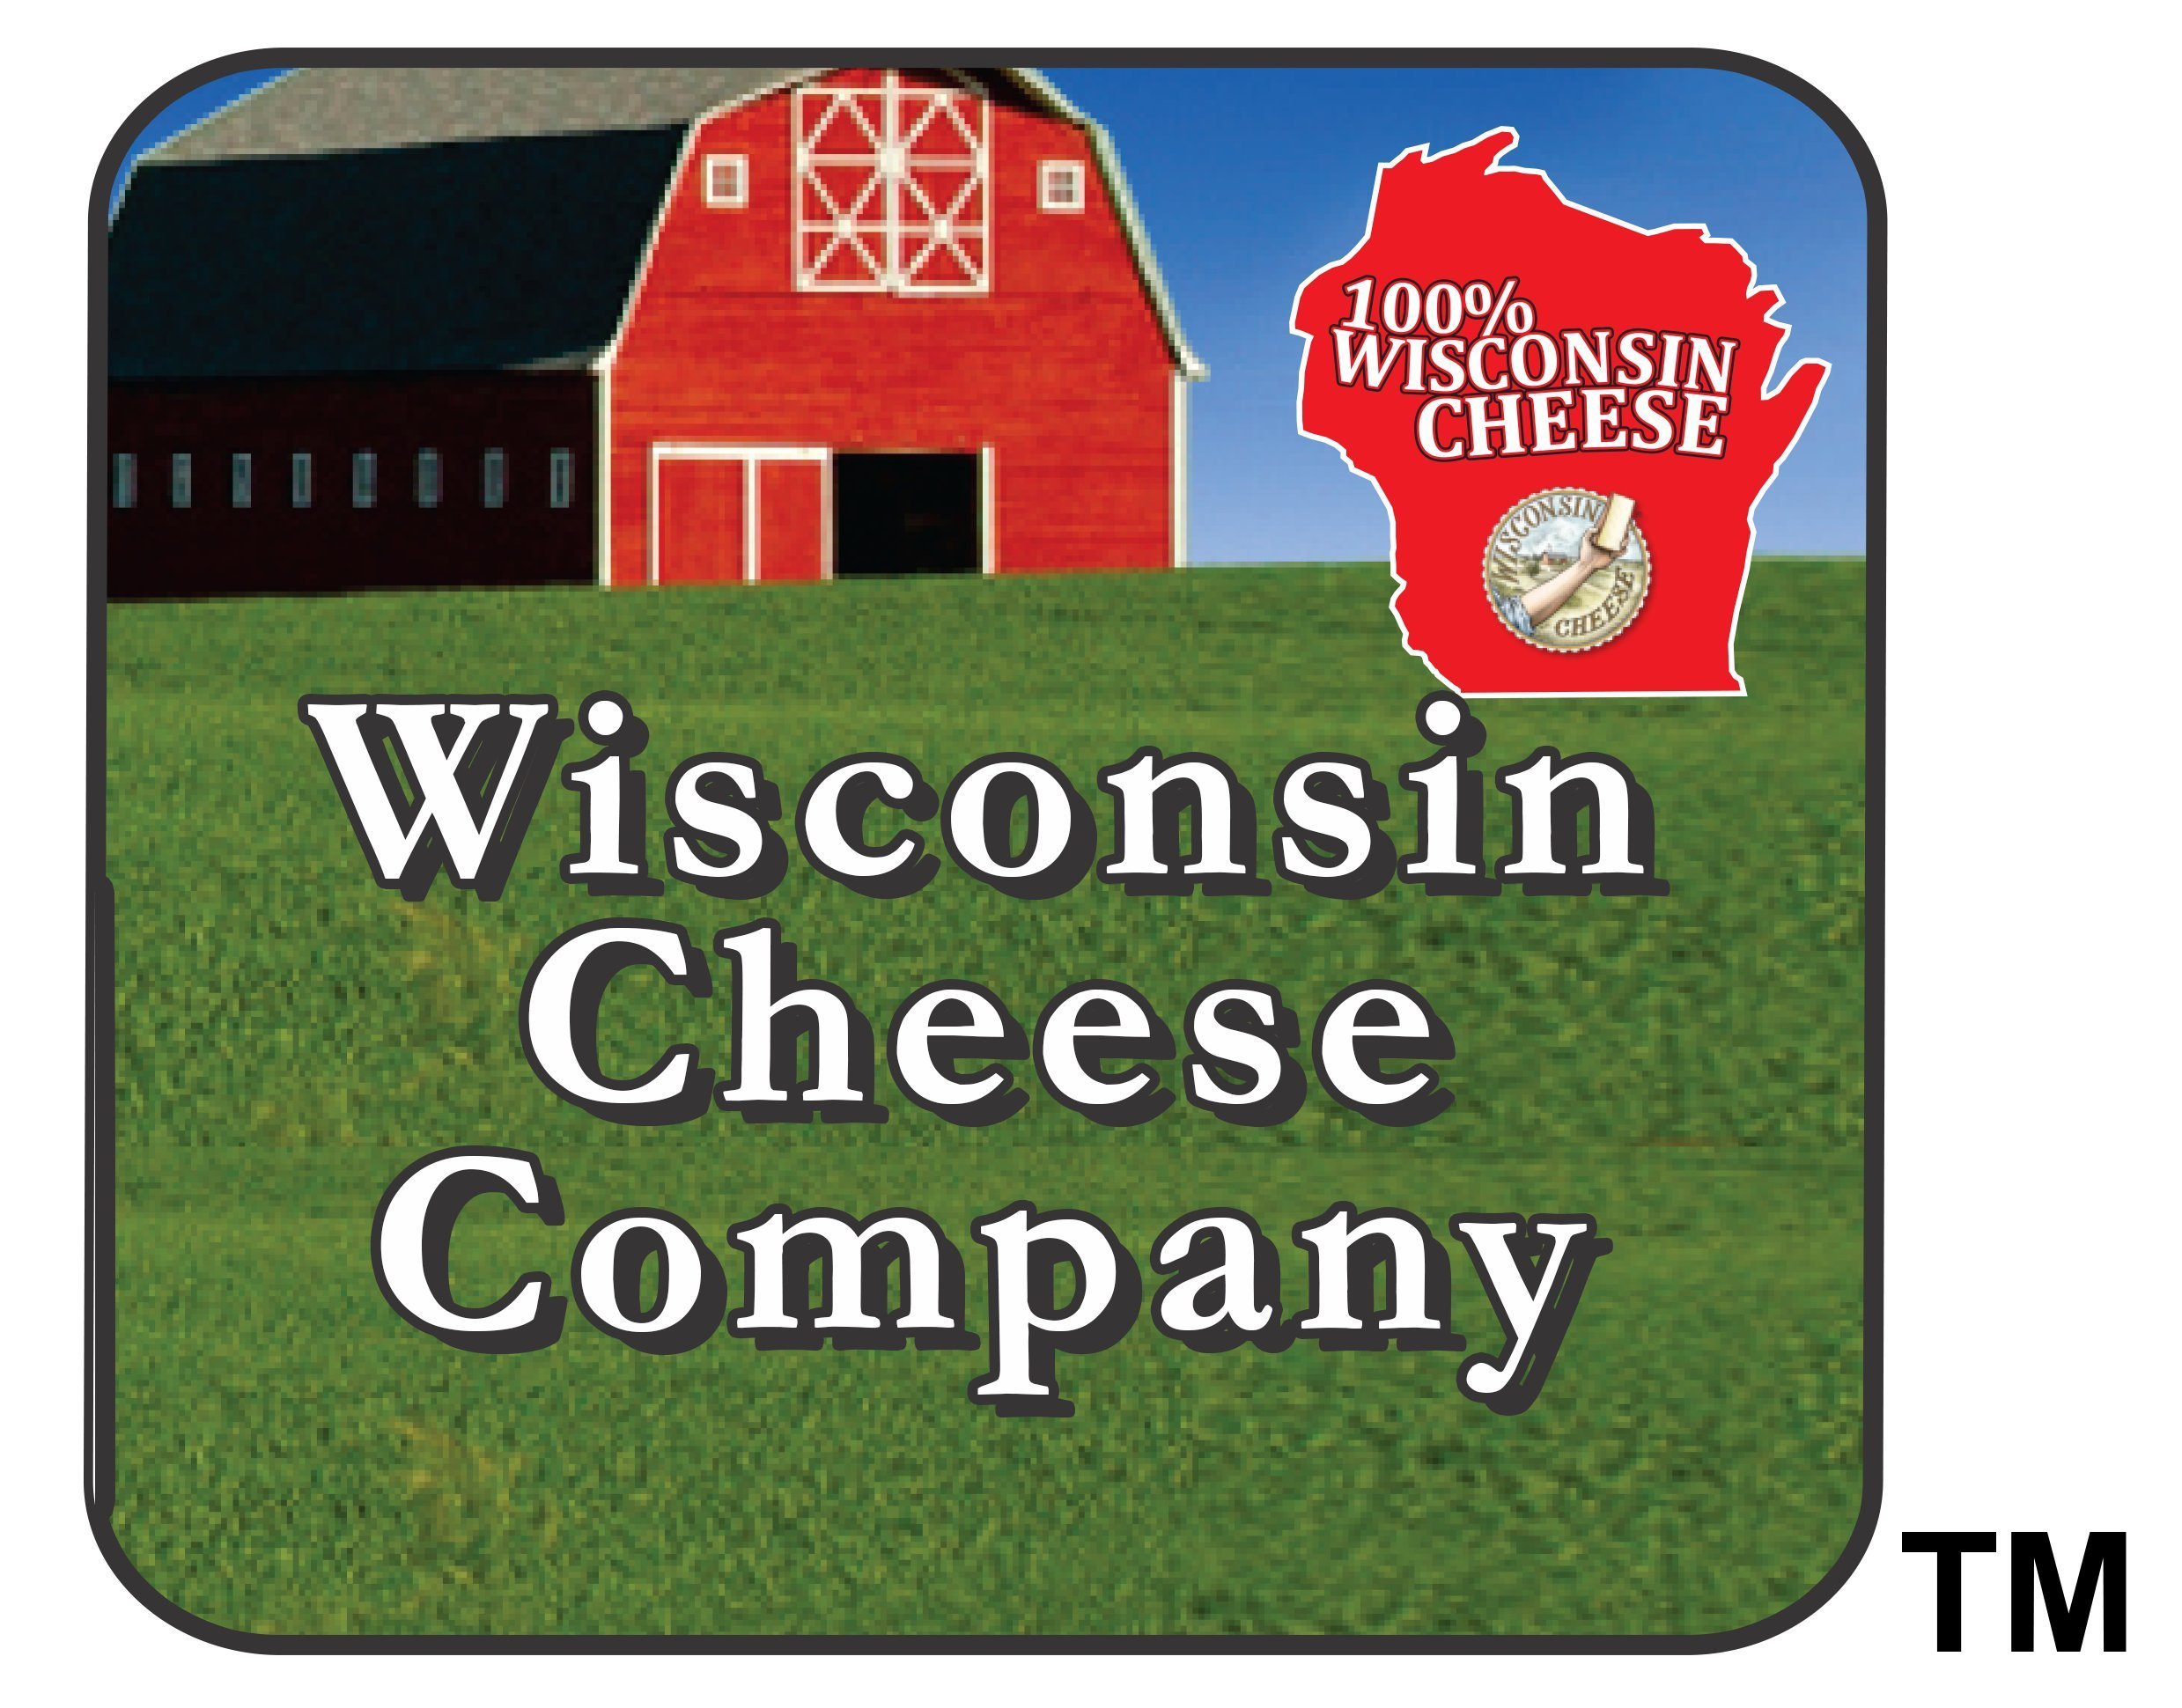 Gourmet Variety Sampler Gift Basket - Smoked Summer Sausages & 100% Wisconsin Cheeses - GLUTEN-FREE - Perfect Cheese and Sausage Snack!! by WISCONSIN'S BEST and WISCONSIN CHEESE COMPANY (Image #5)